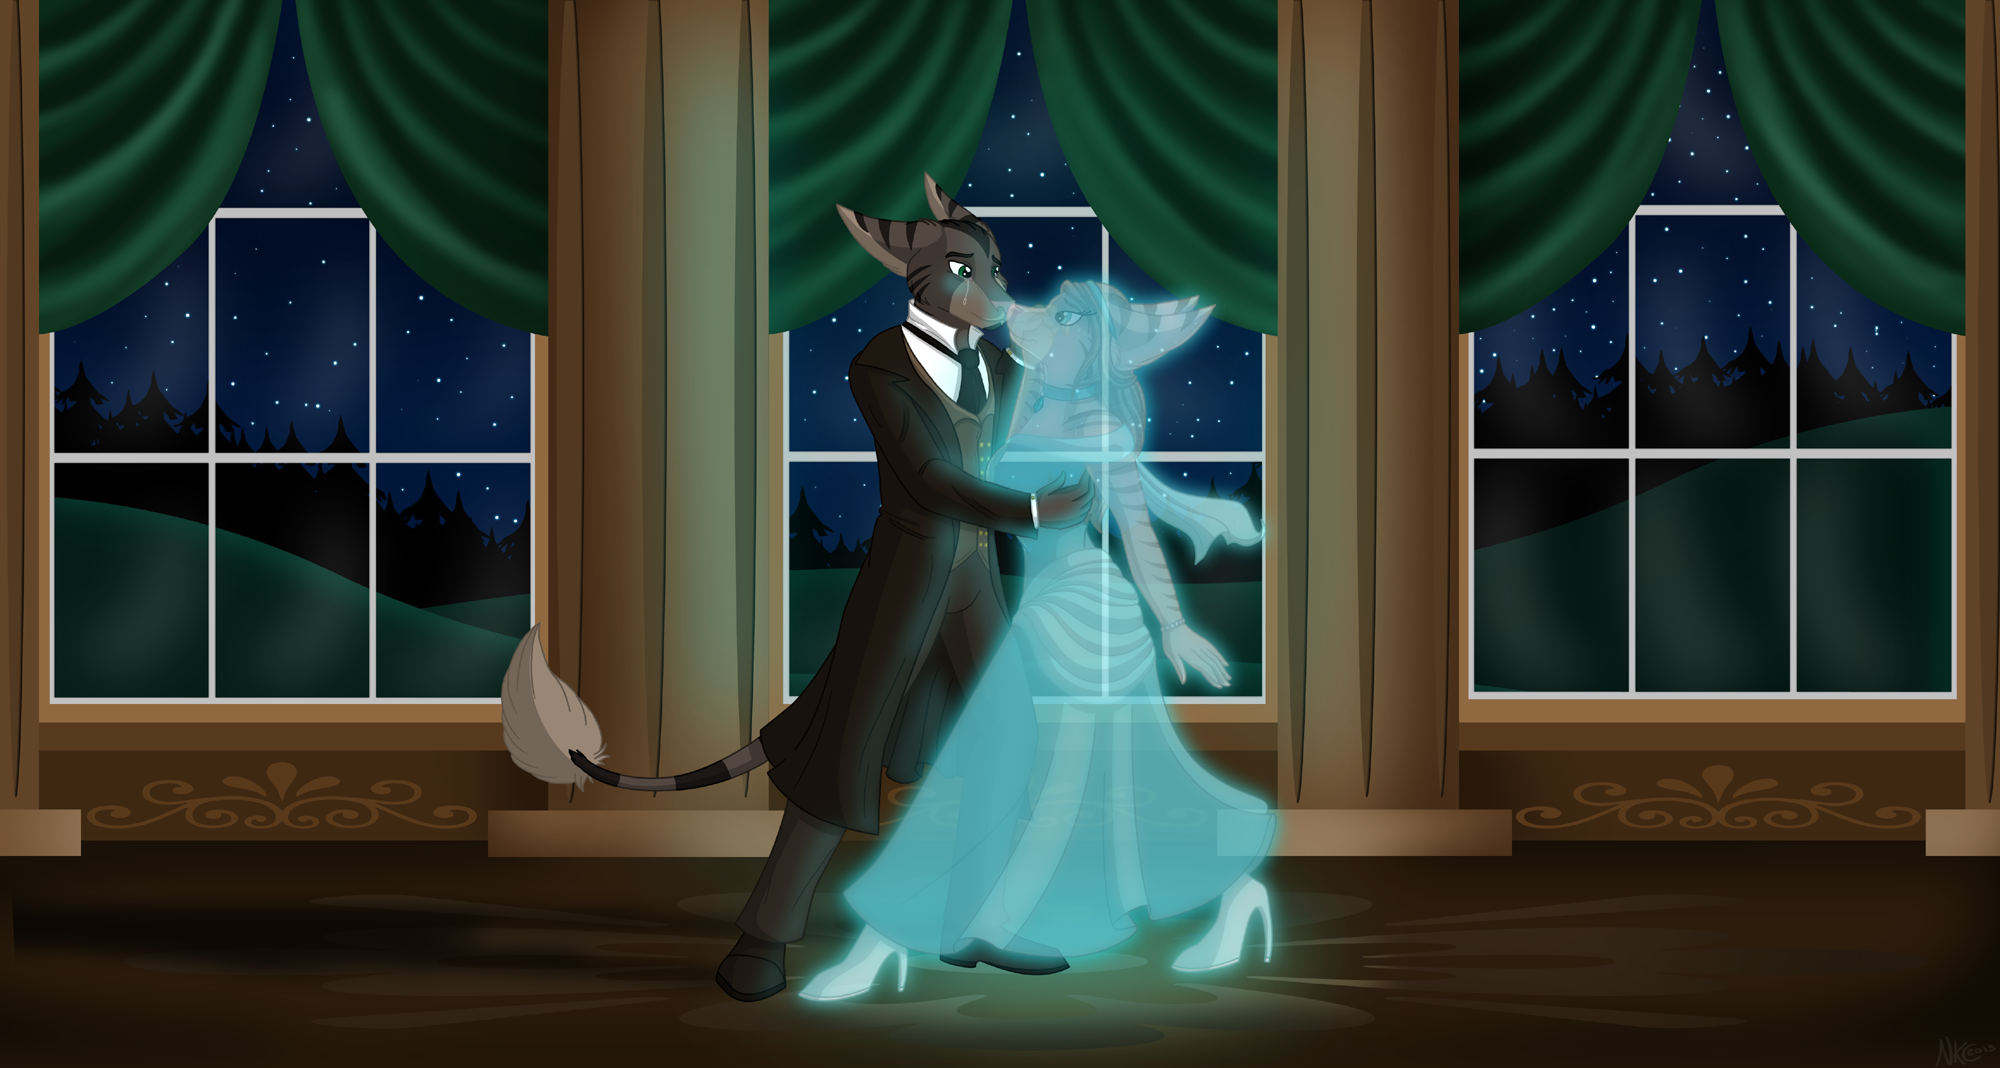 May I Have the Last Dance by DarkRavenofChaos